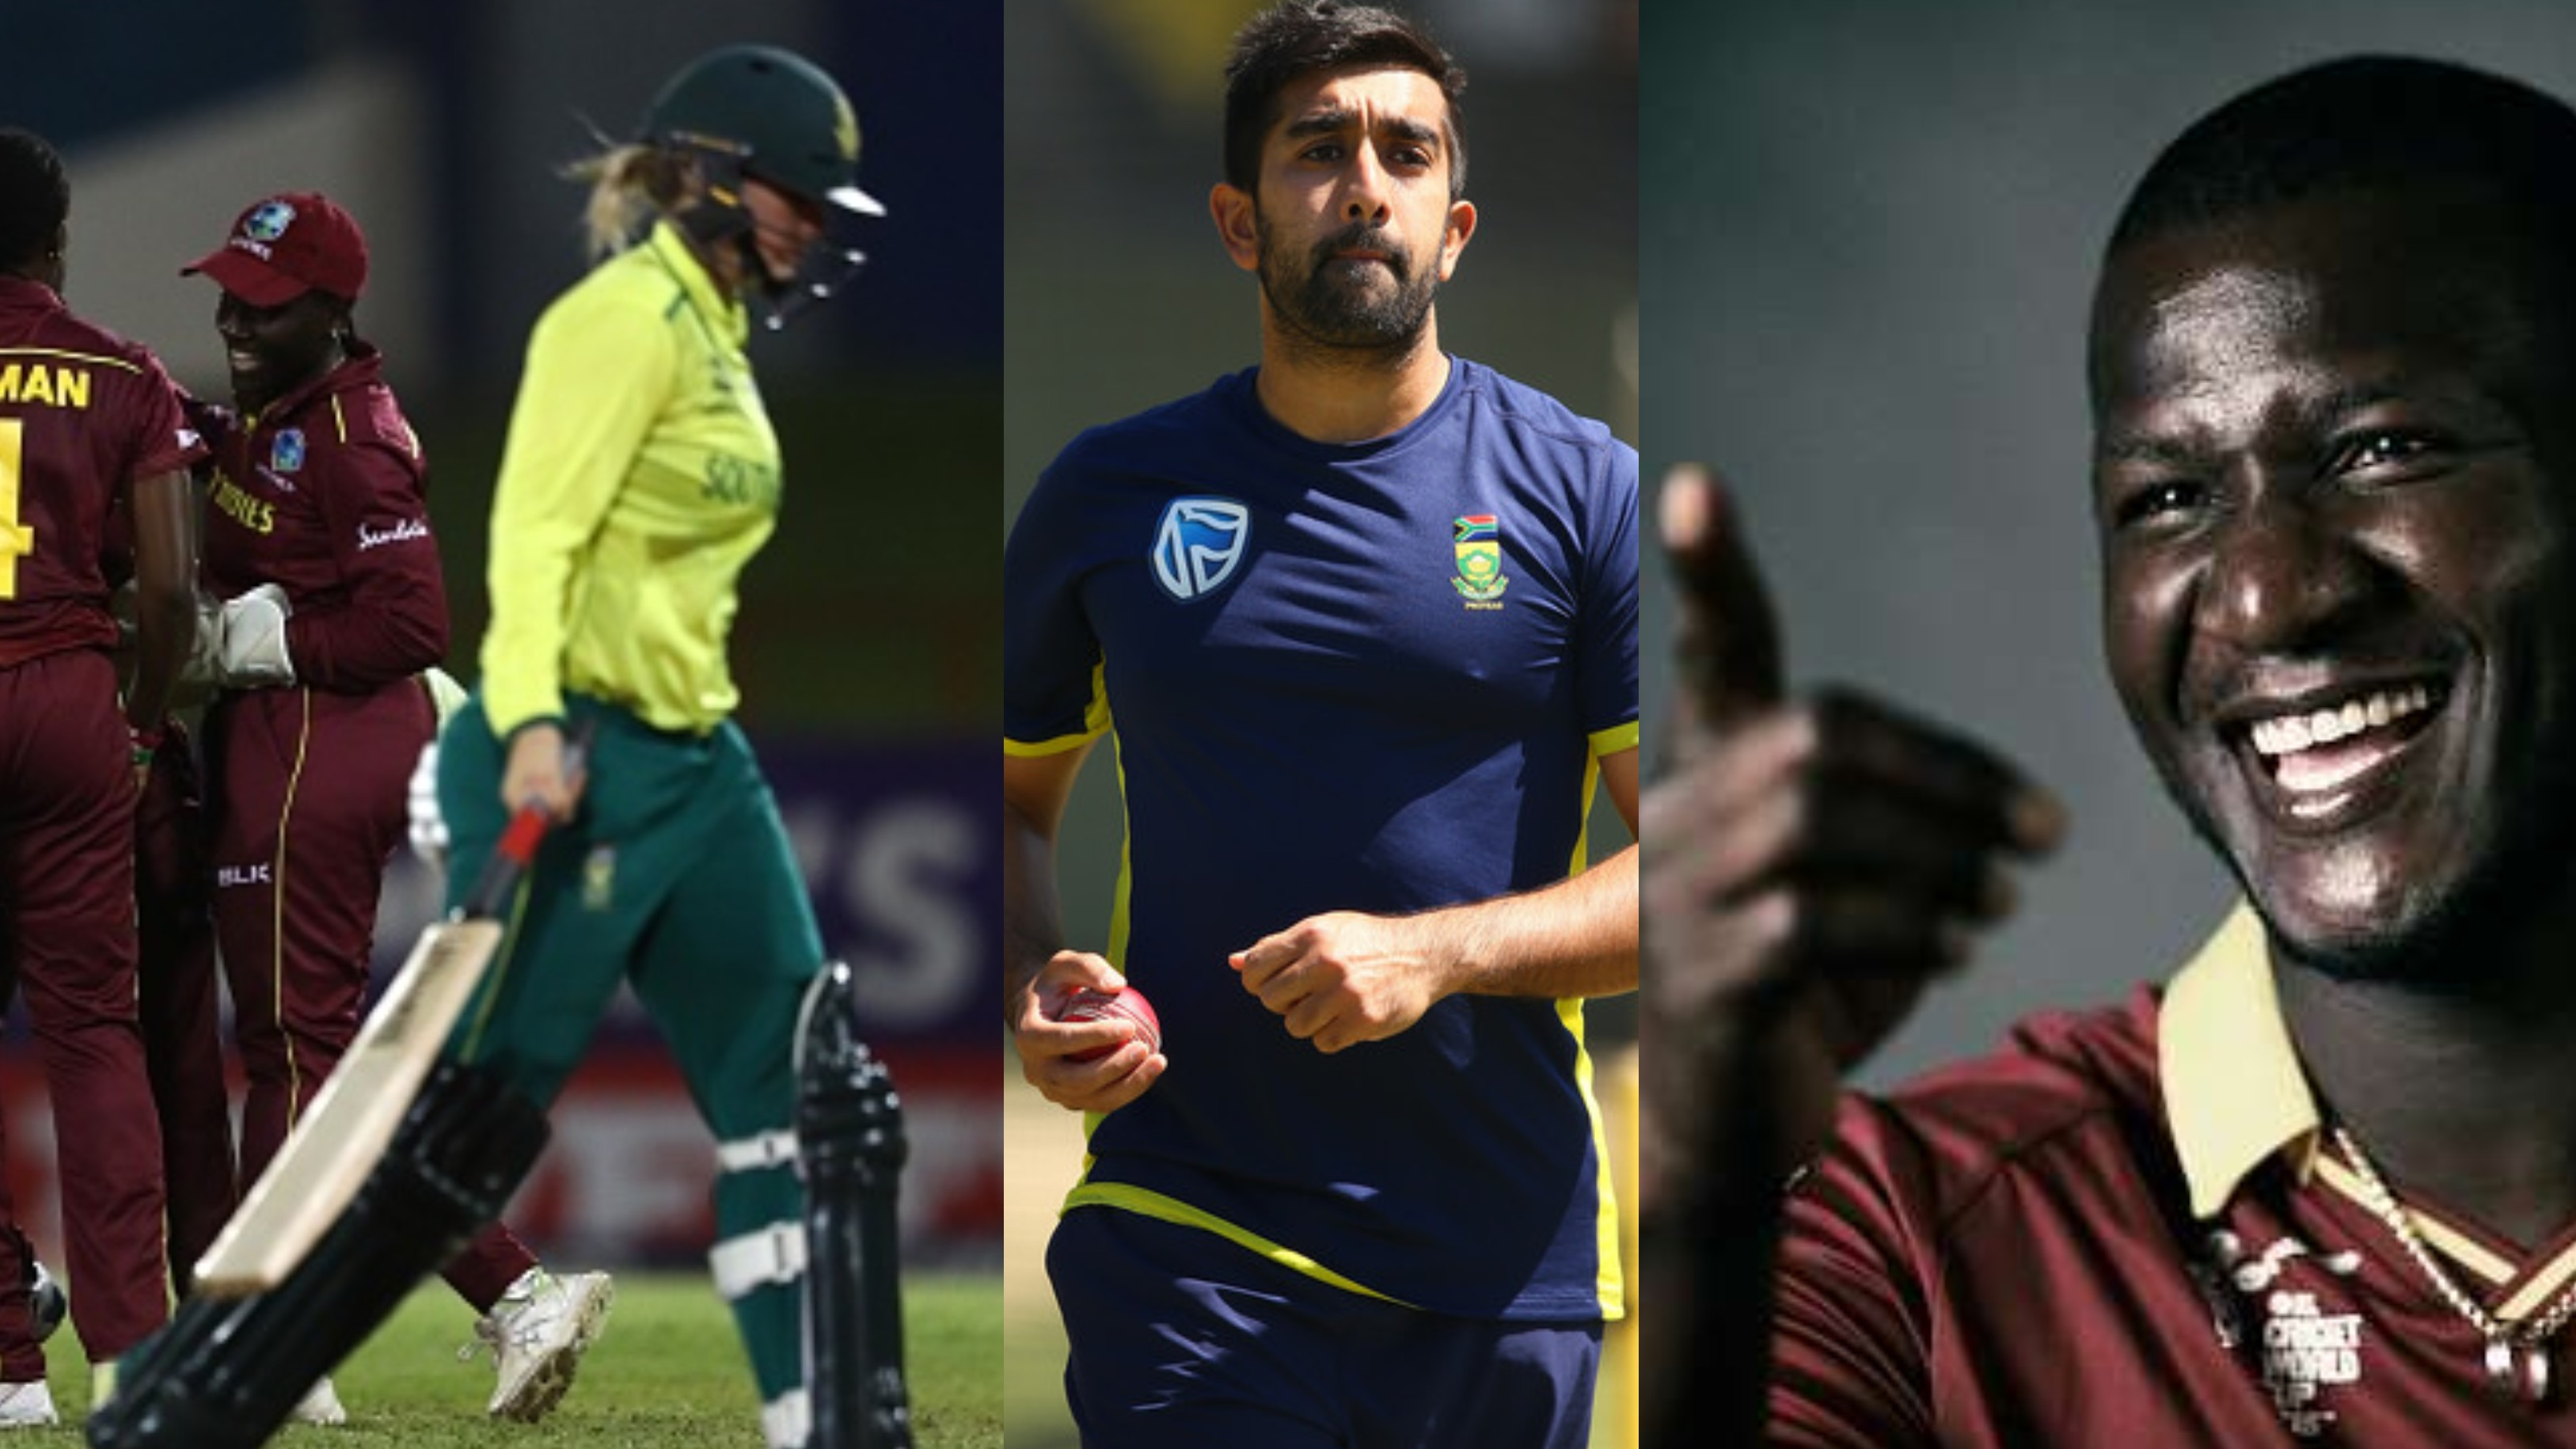 Womens World T20: Tabraiz Shamsi and South Africa gets brutally roasted by Darren Sammy